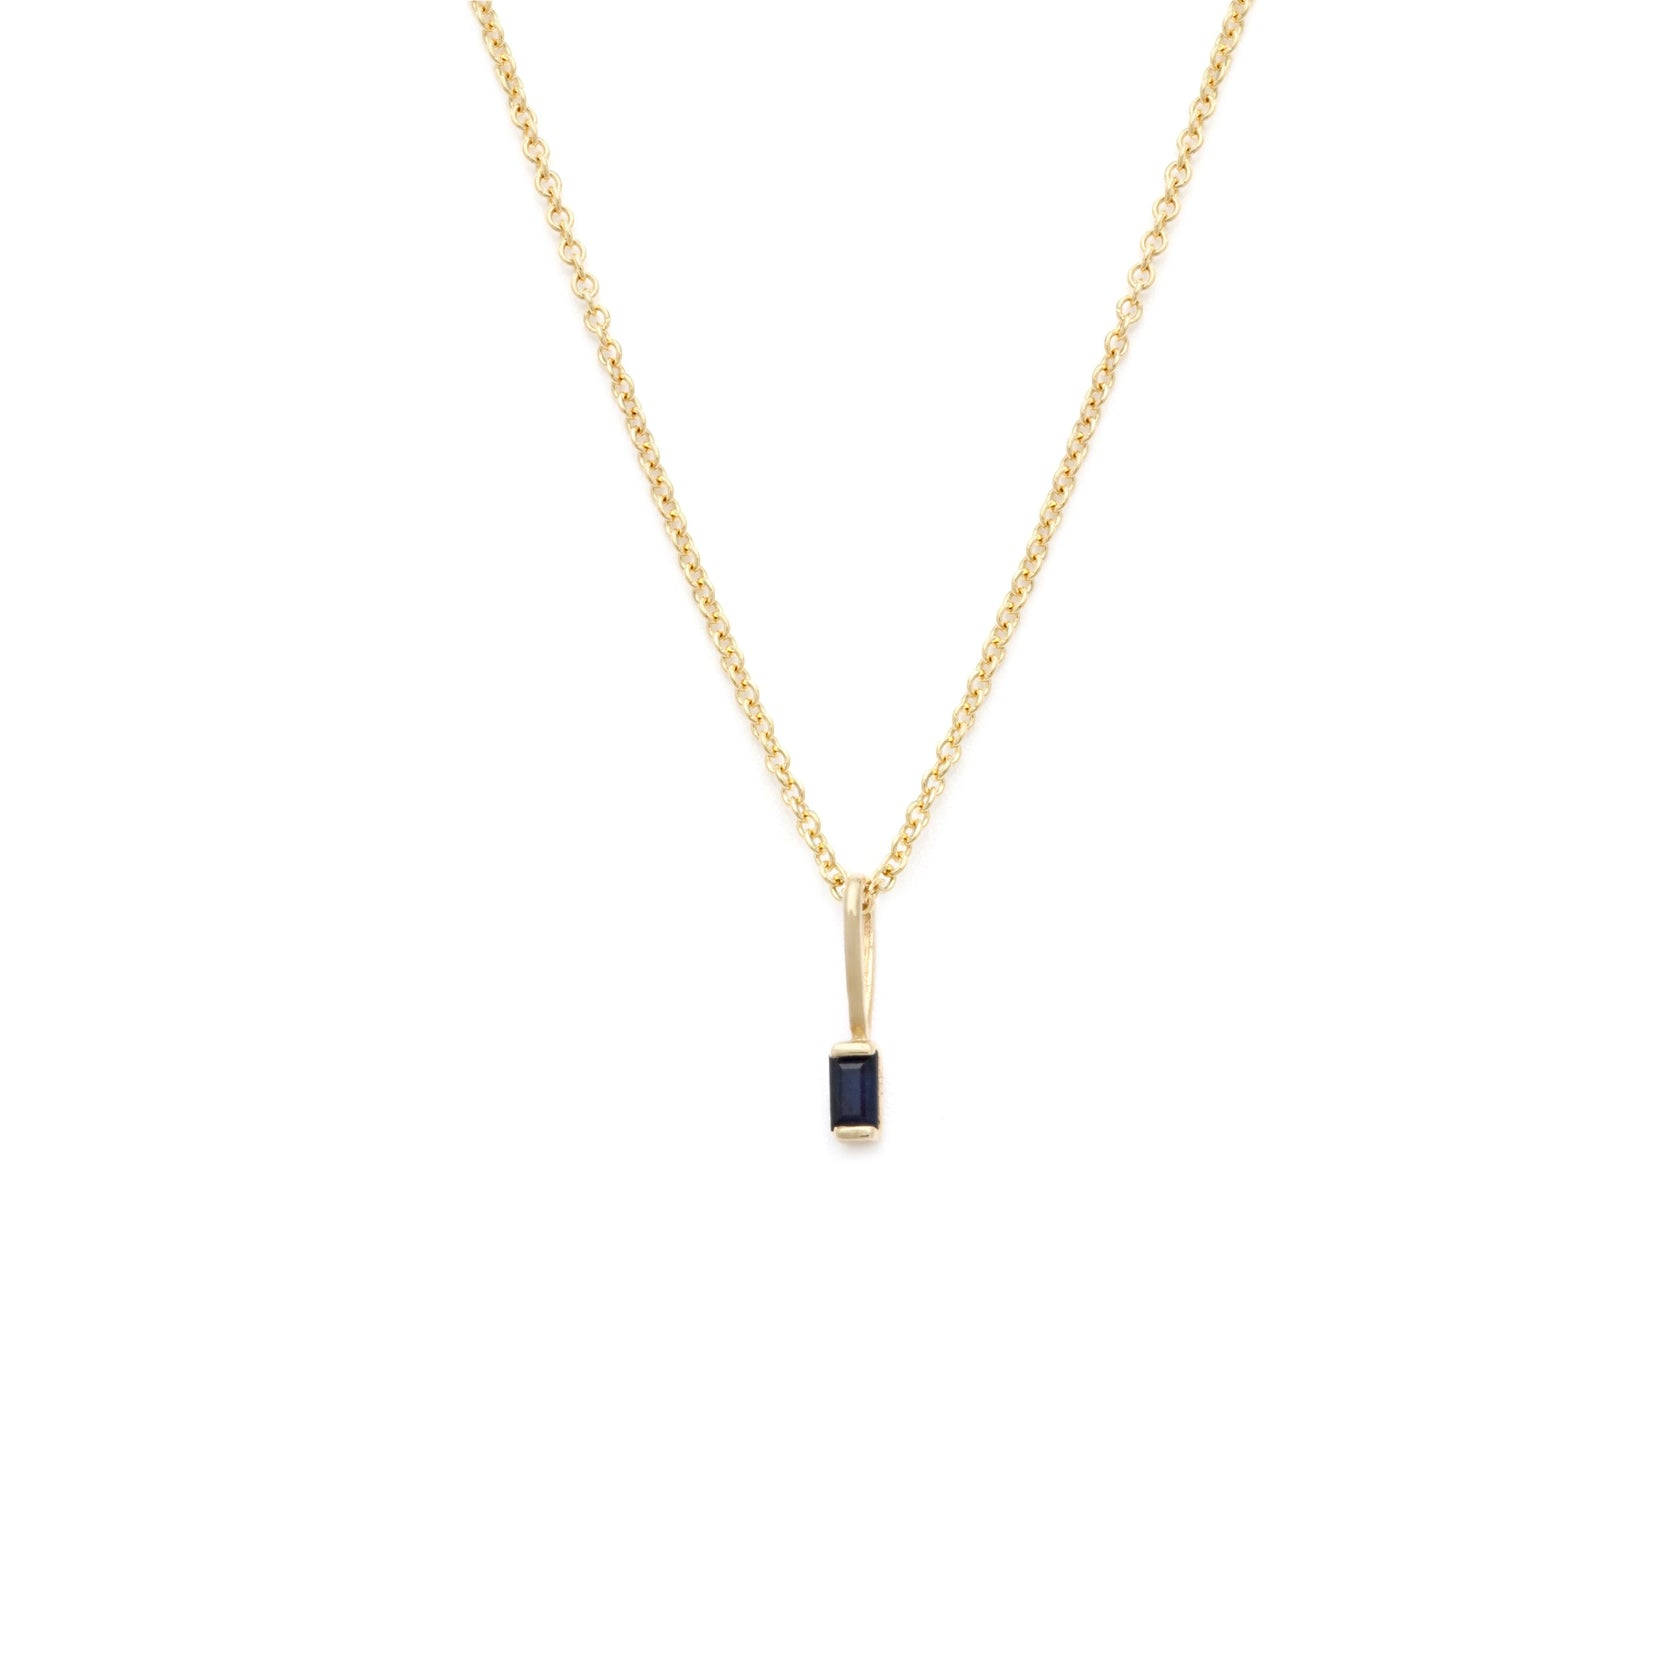 Coveted Sapphire Pendant - 14k Solid Gold